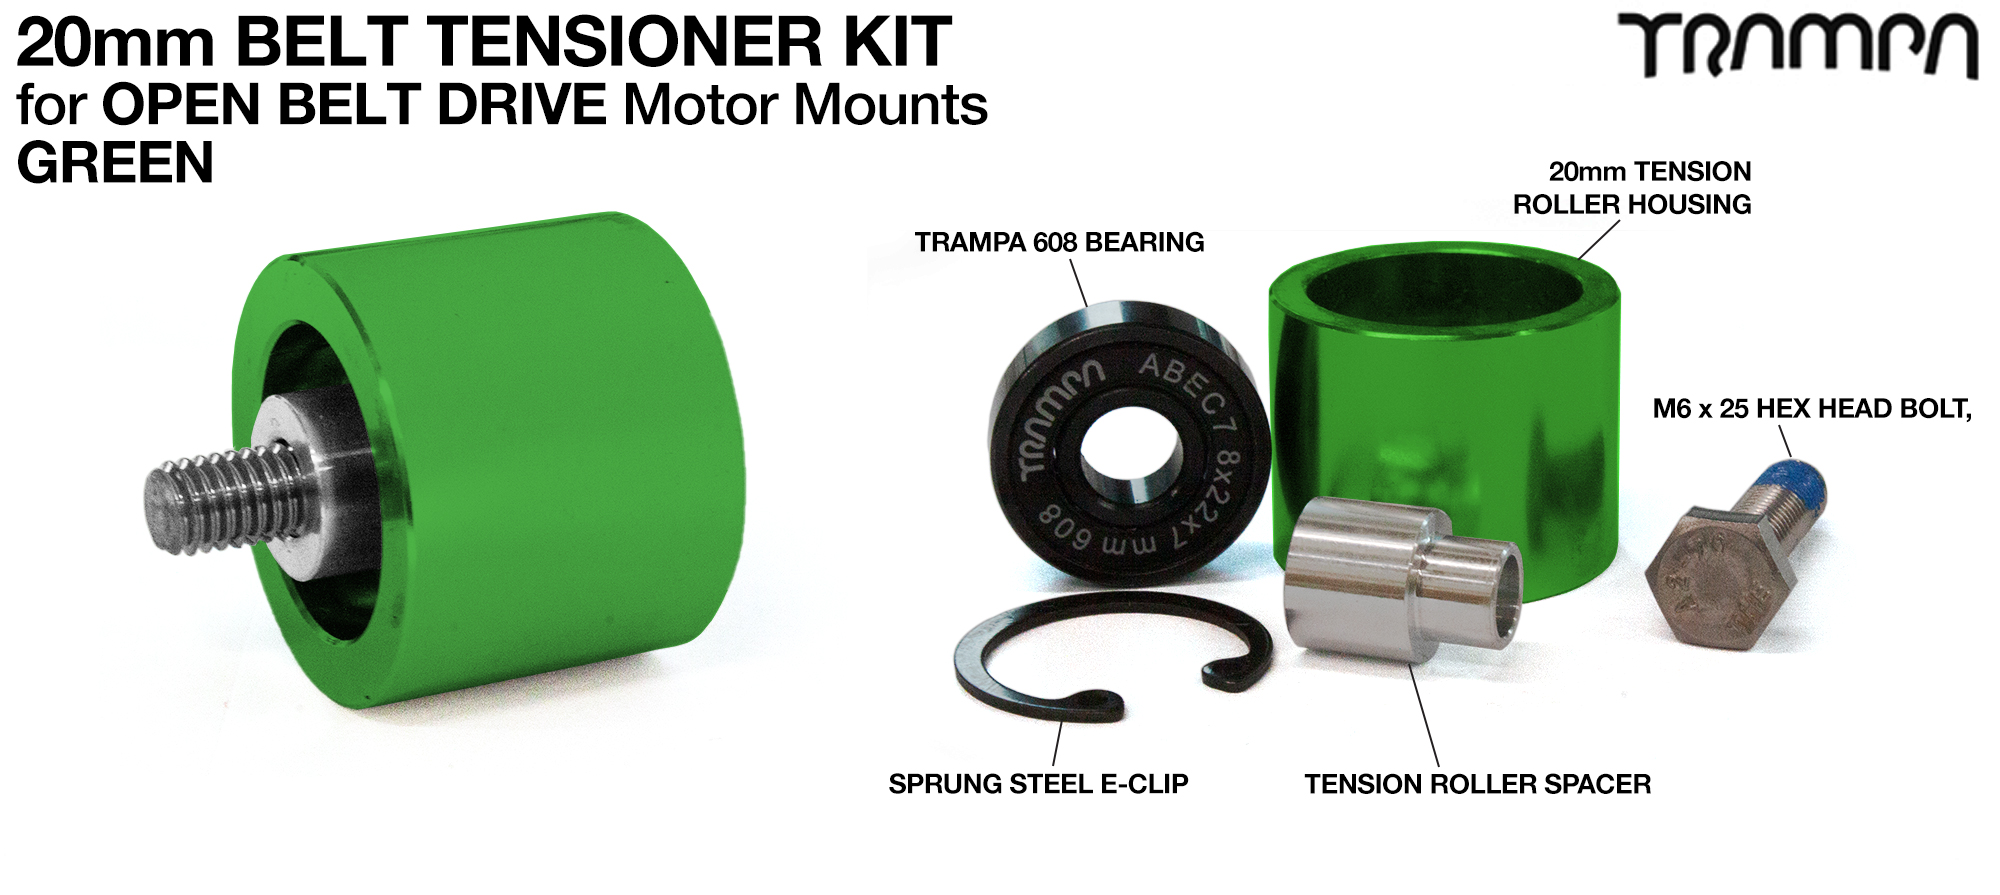 OPEN BELT DRIVE Belt Tensioning System for 20mm Belts - GREEN Roller Housing